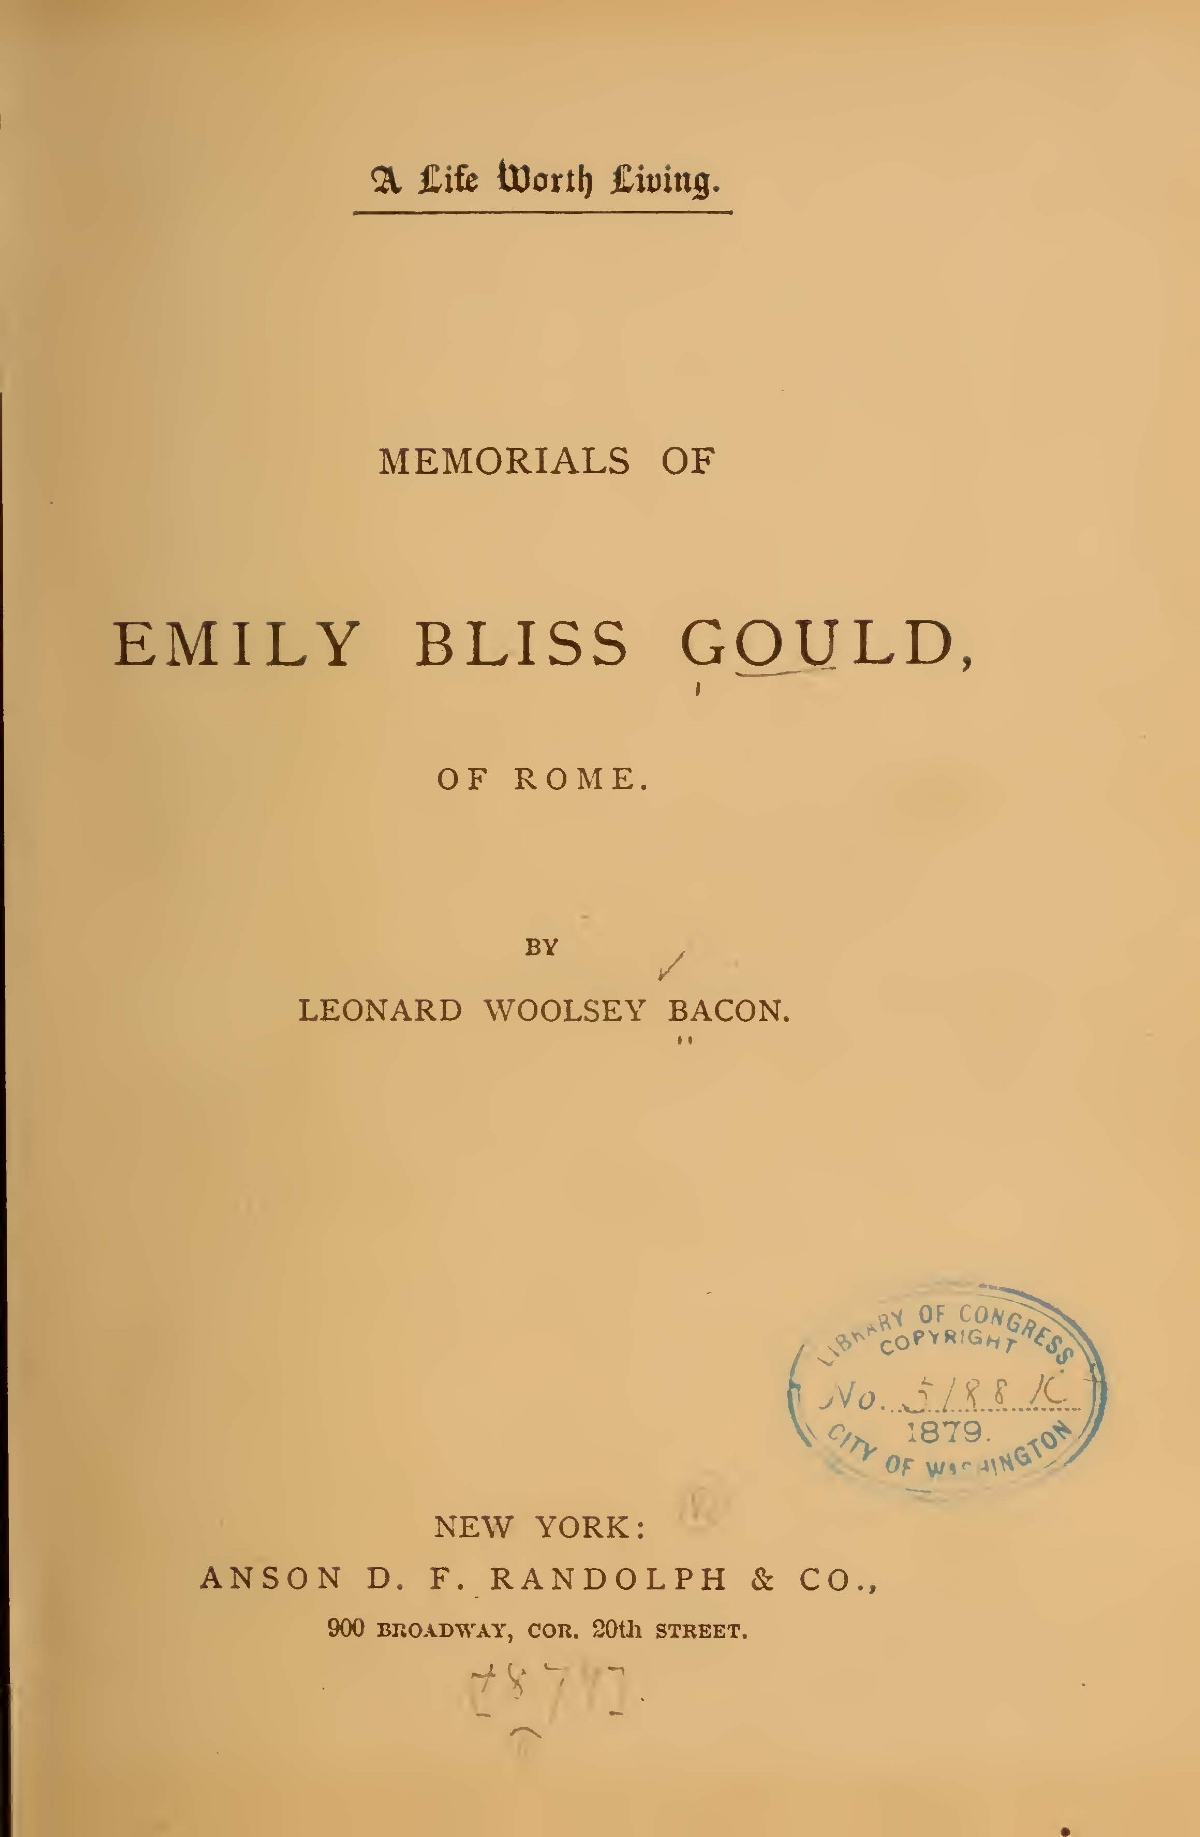 Bacon, Leonard Woolsey, A Life Worth Living Title Page.jpg